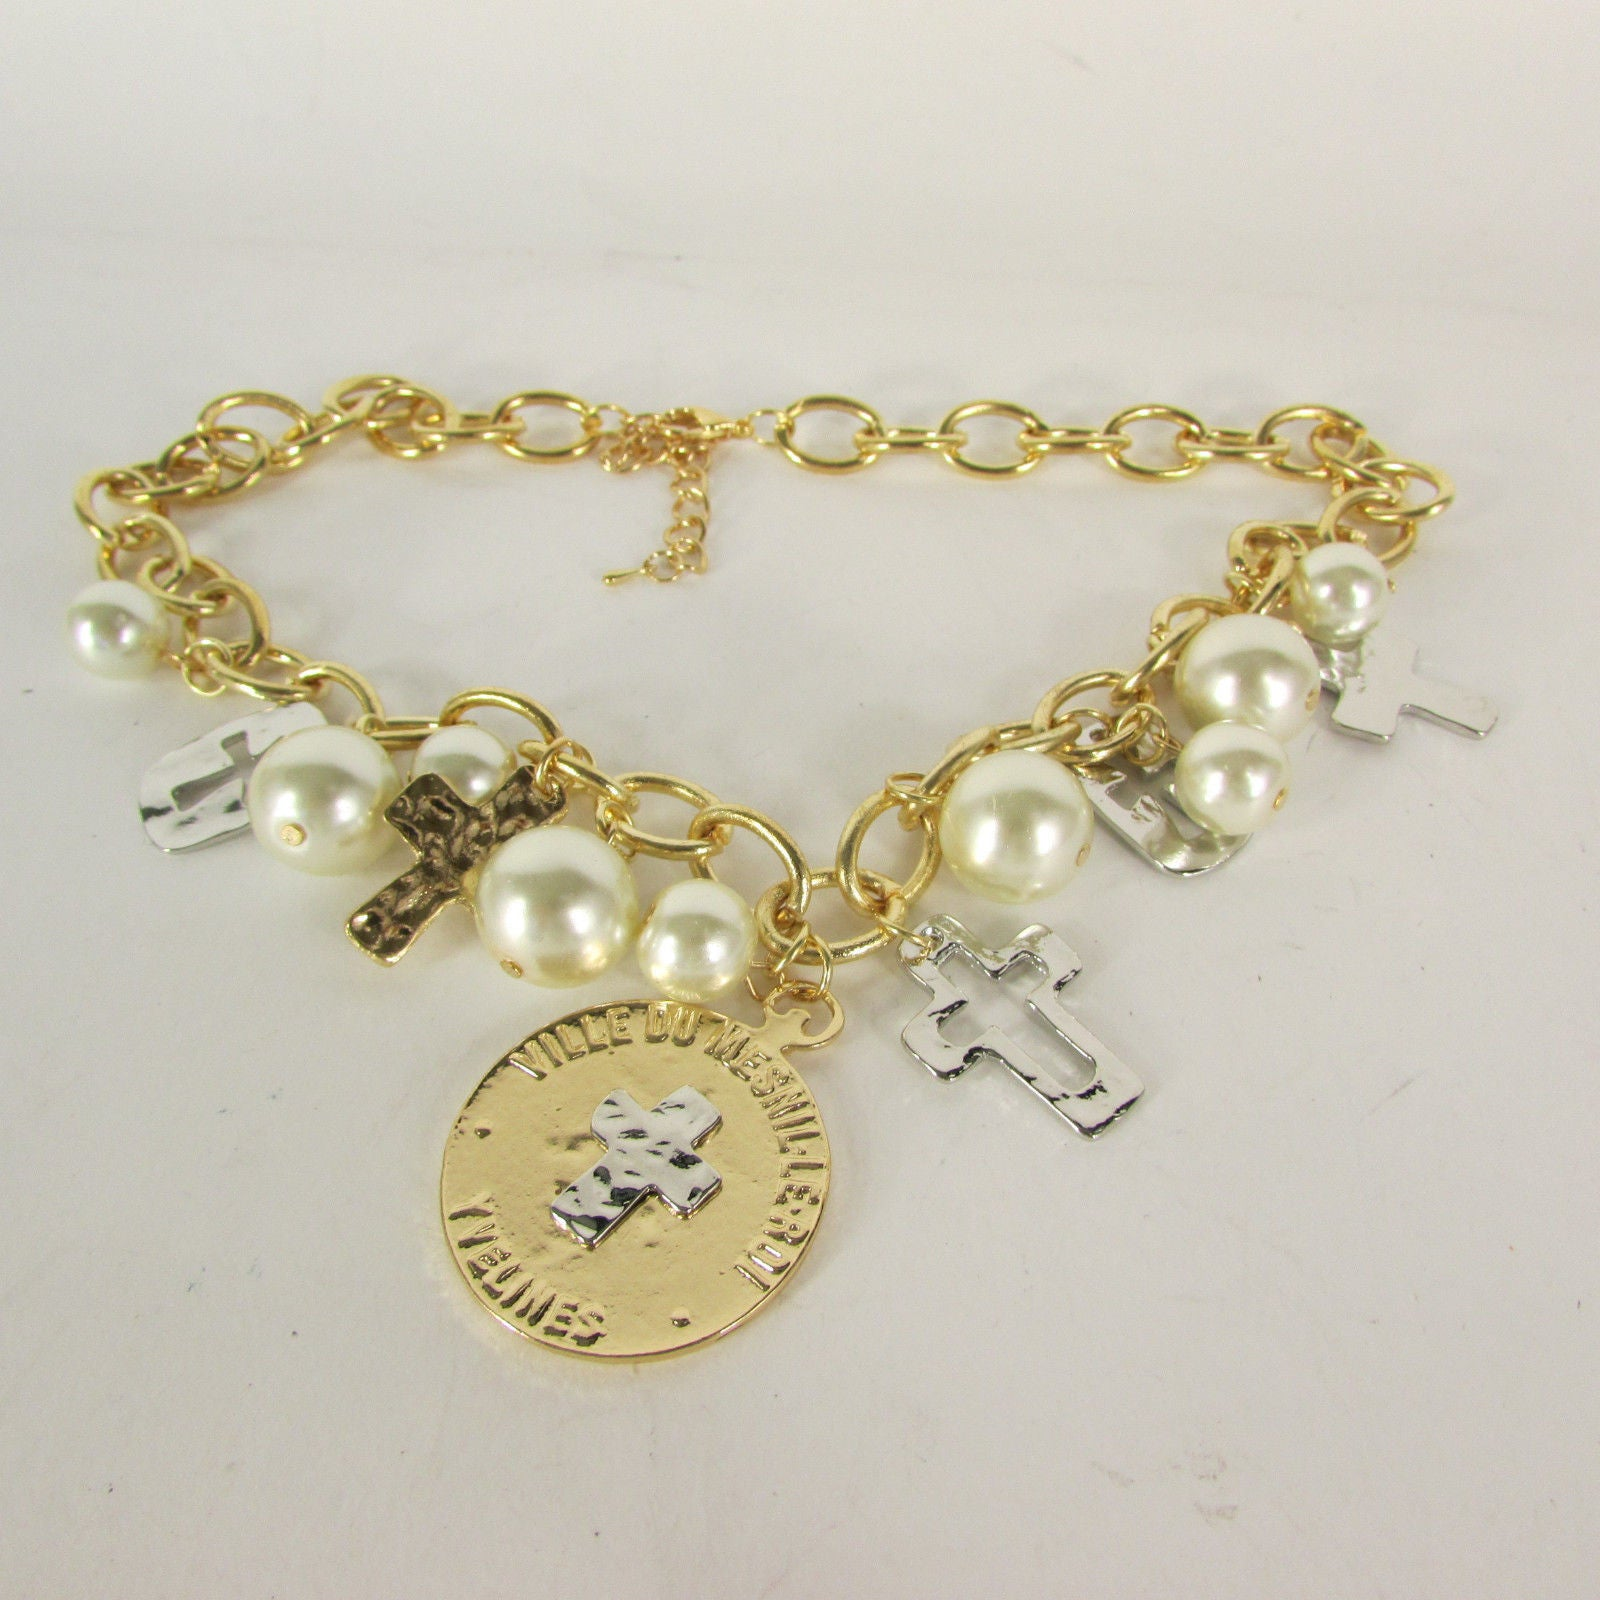 Gold Metal Chains Necklace Coin Cross Charms Imitation Pearls ...